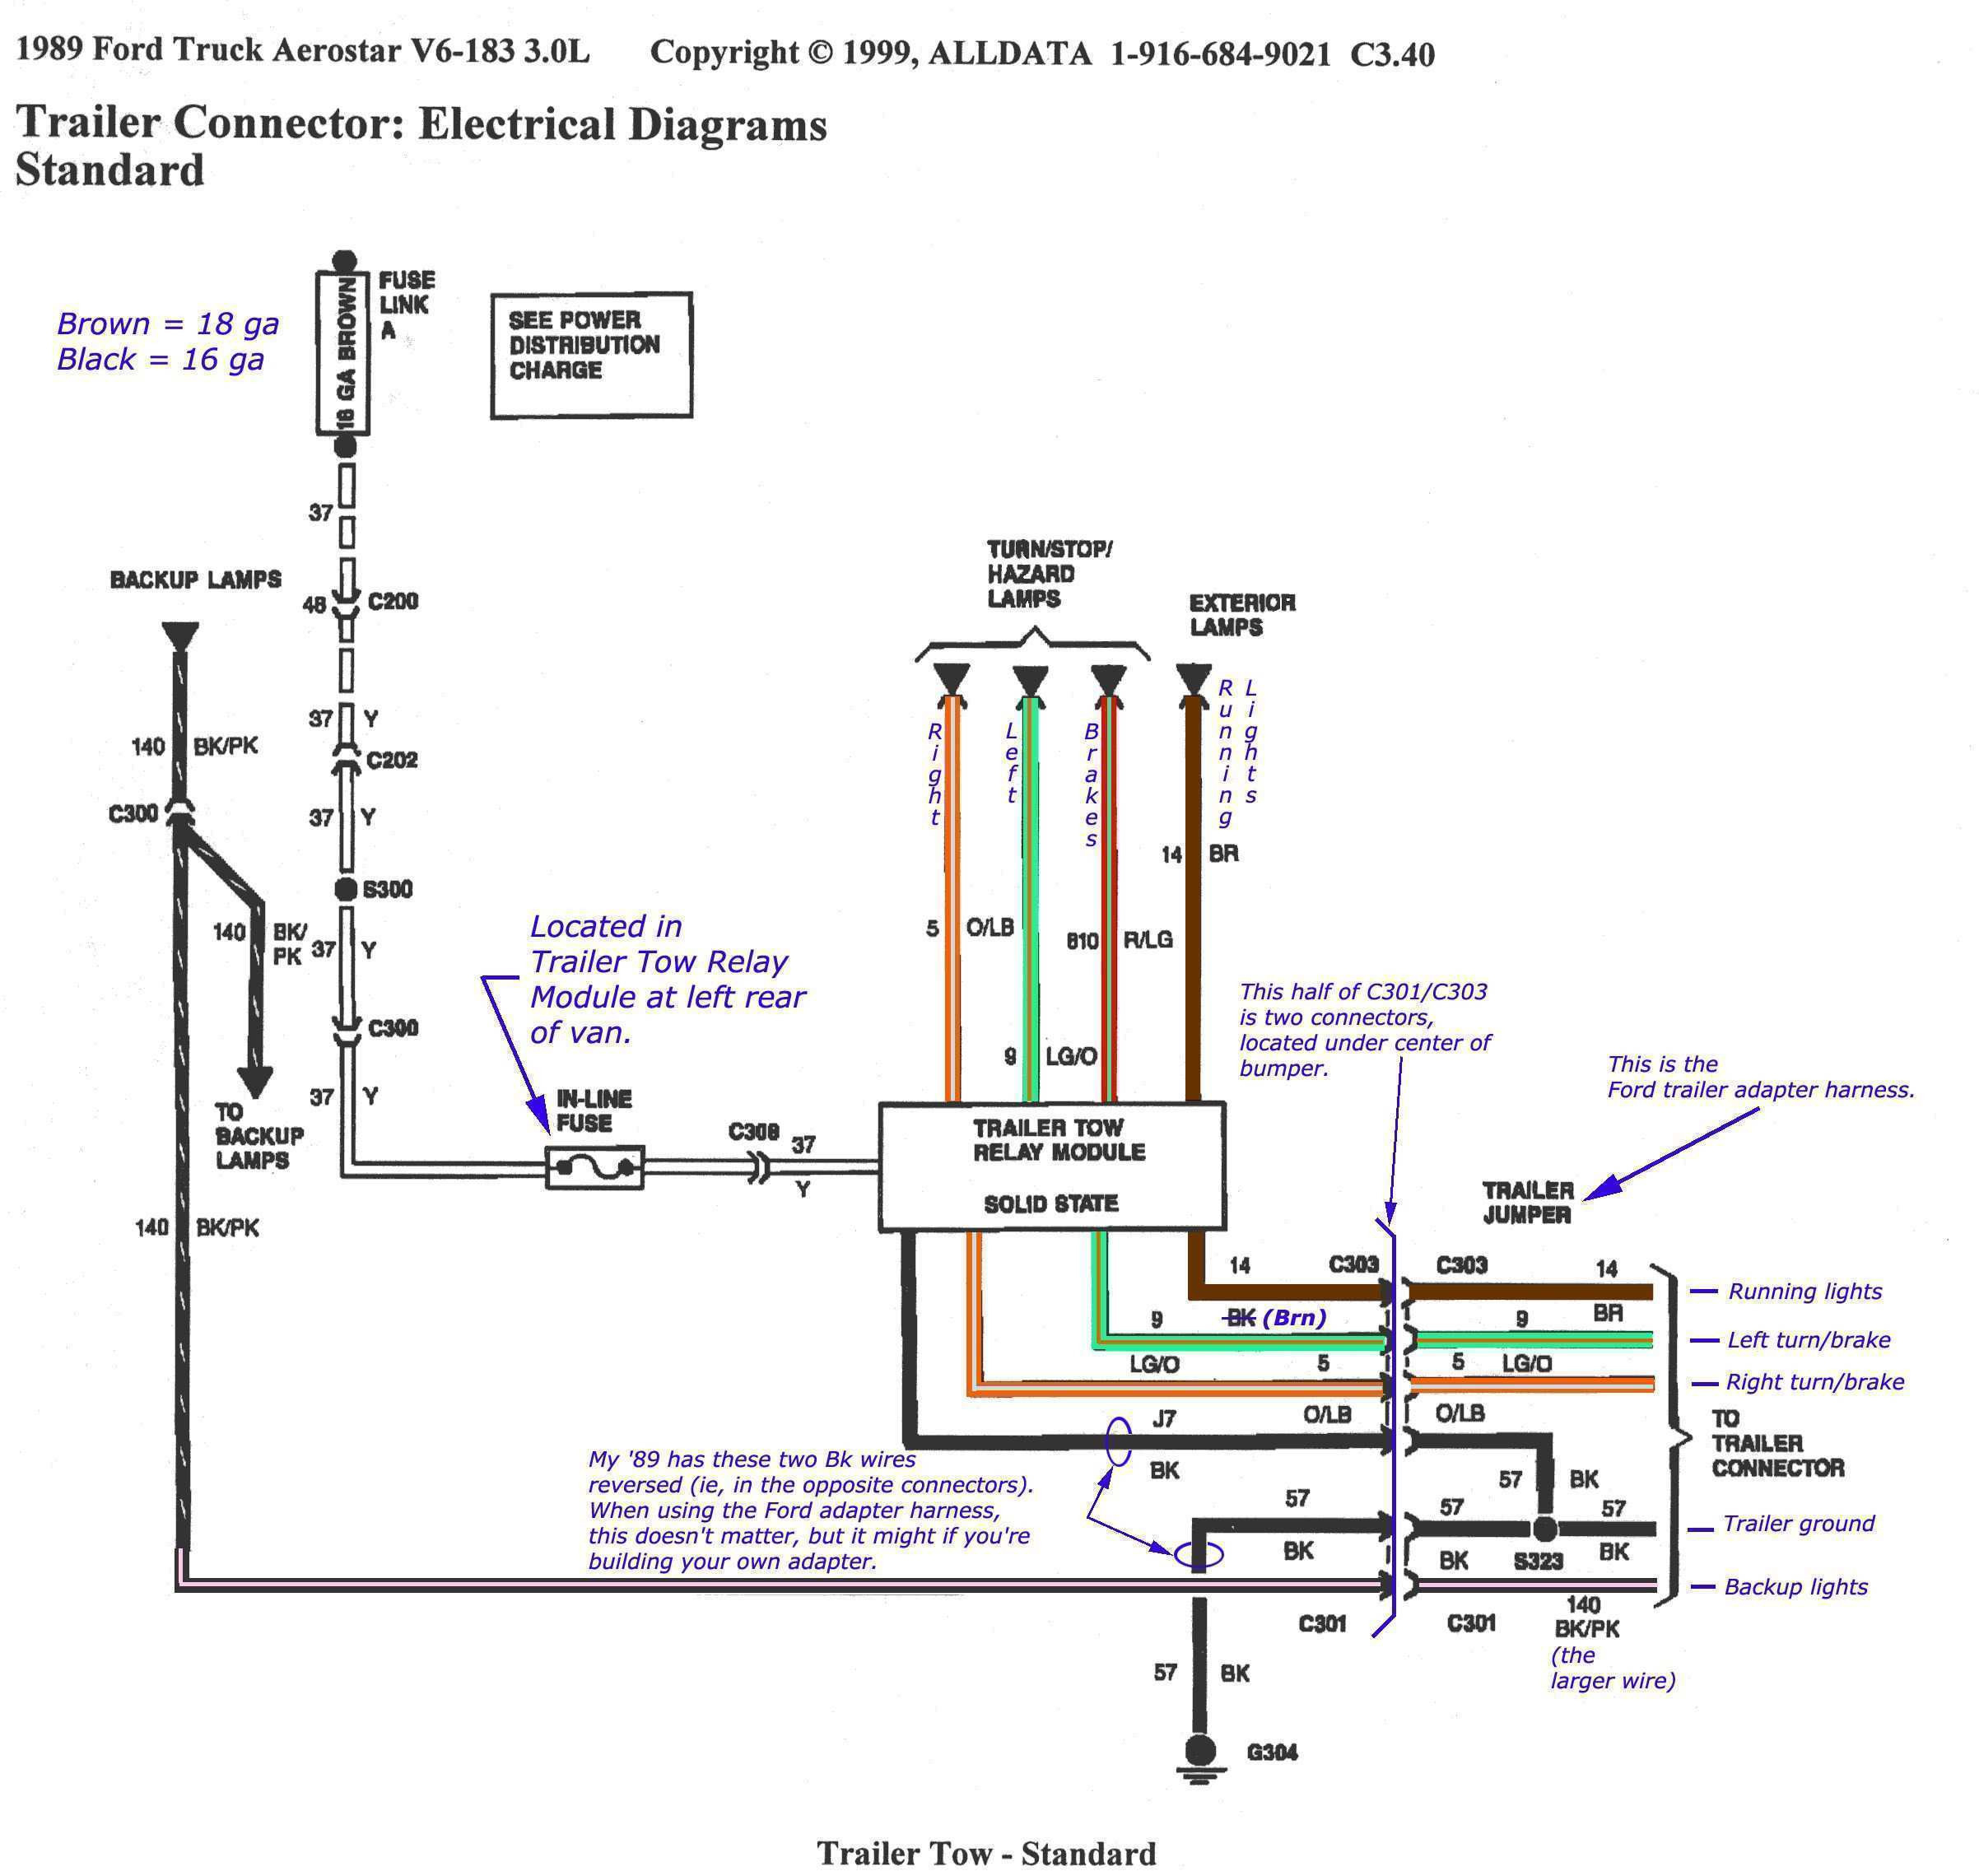 Ford V10 Wiring Diagram - Data Wiring Diagram Schematic - Ford Trailer Wiring Harness Diagram